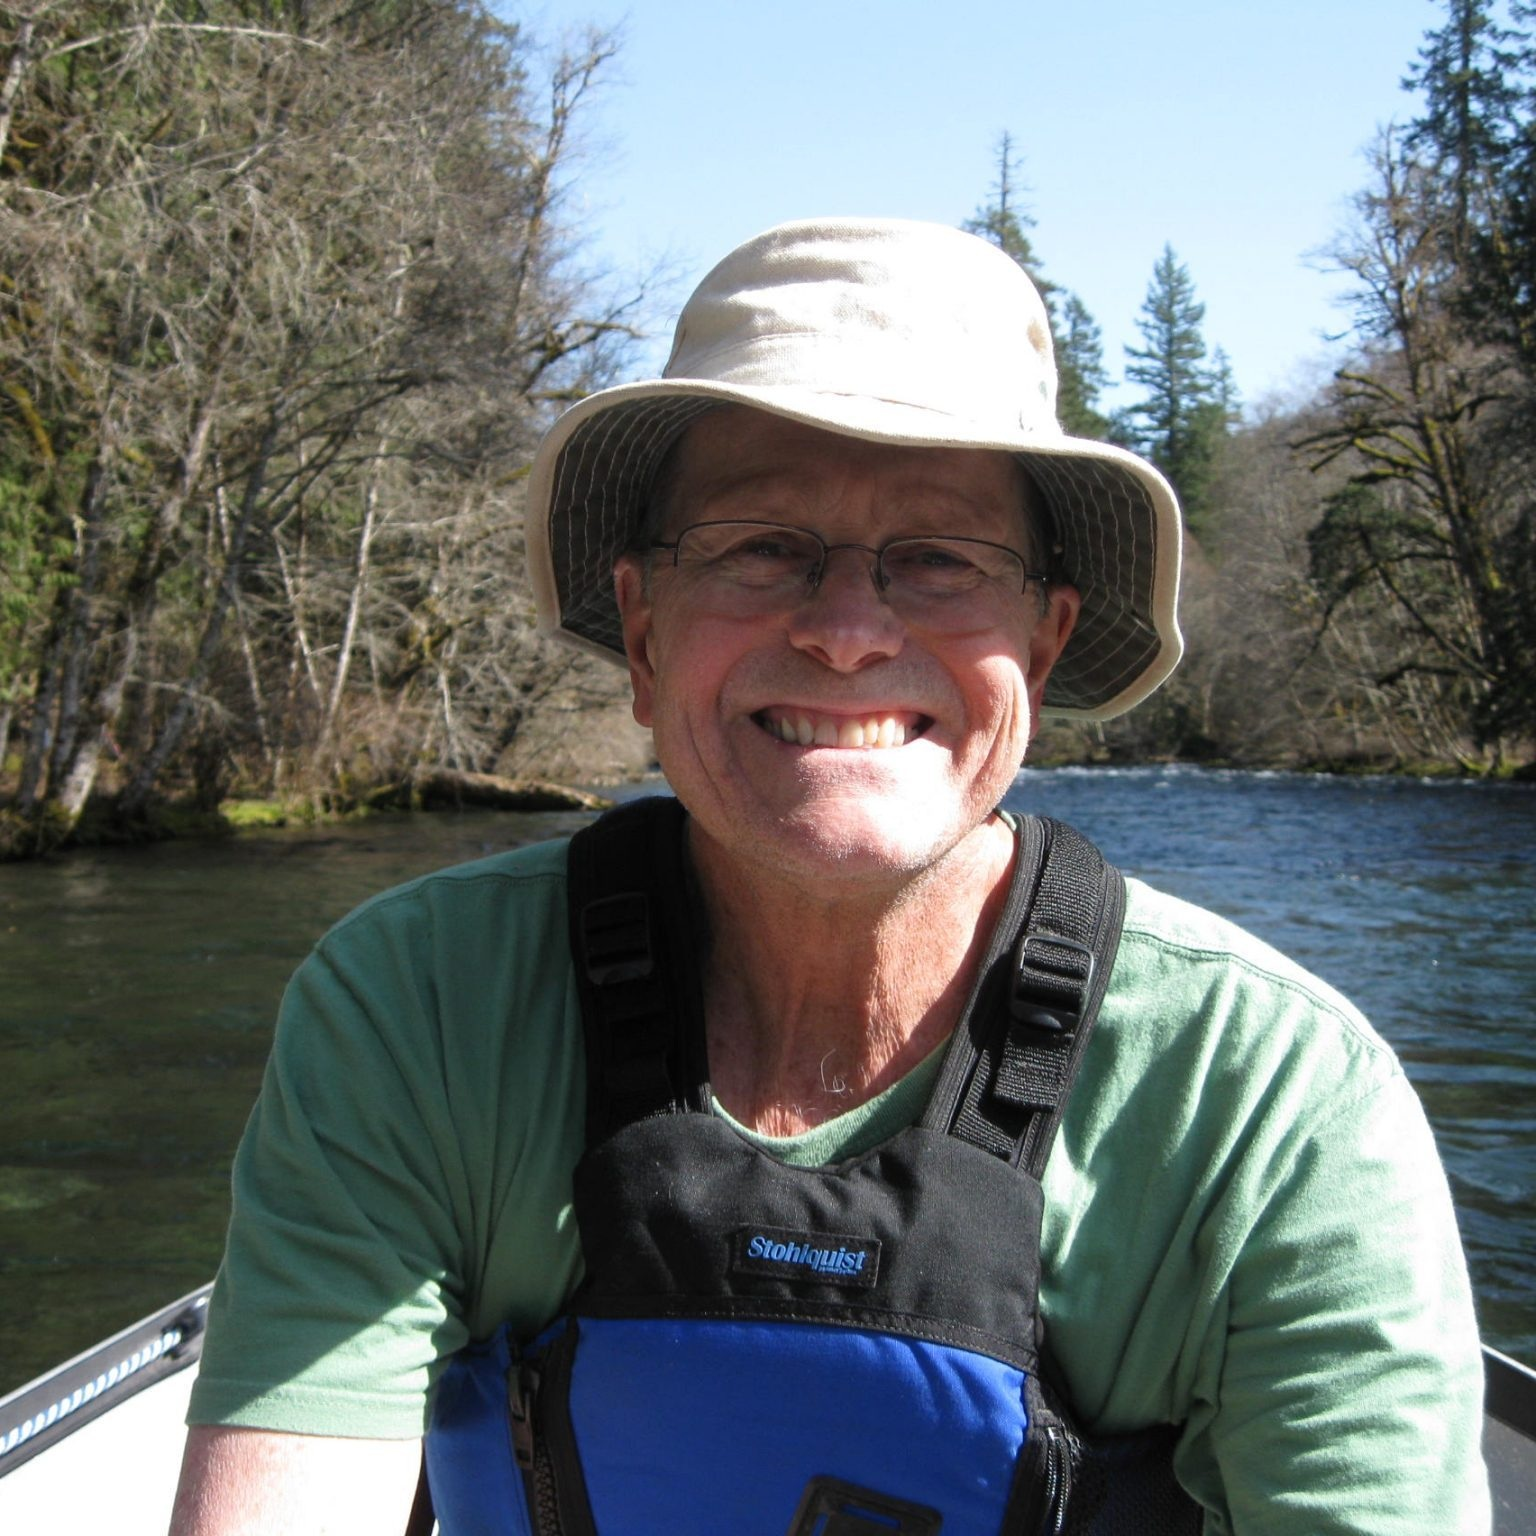 Bill Kloos - Read more about Bill. billkloos@landuseoregon.com, (541) 954-0095